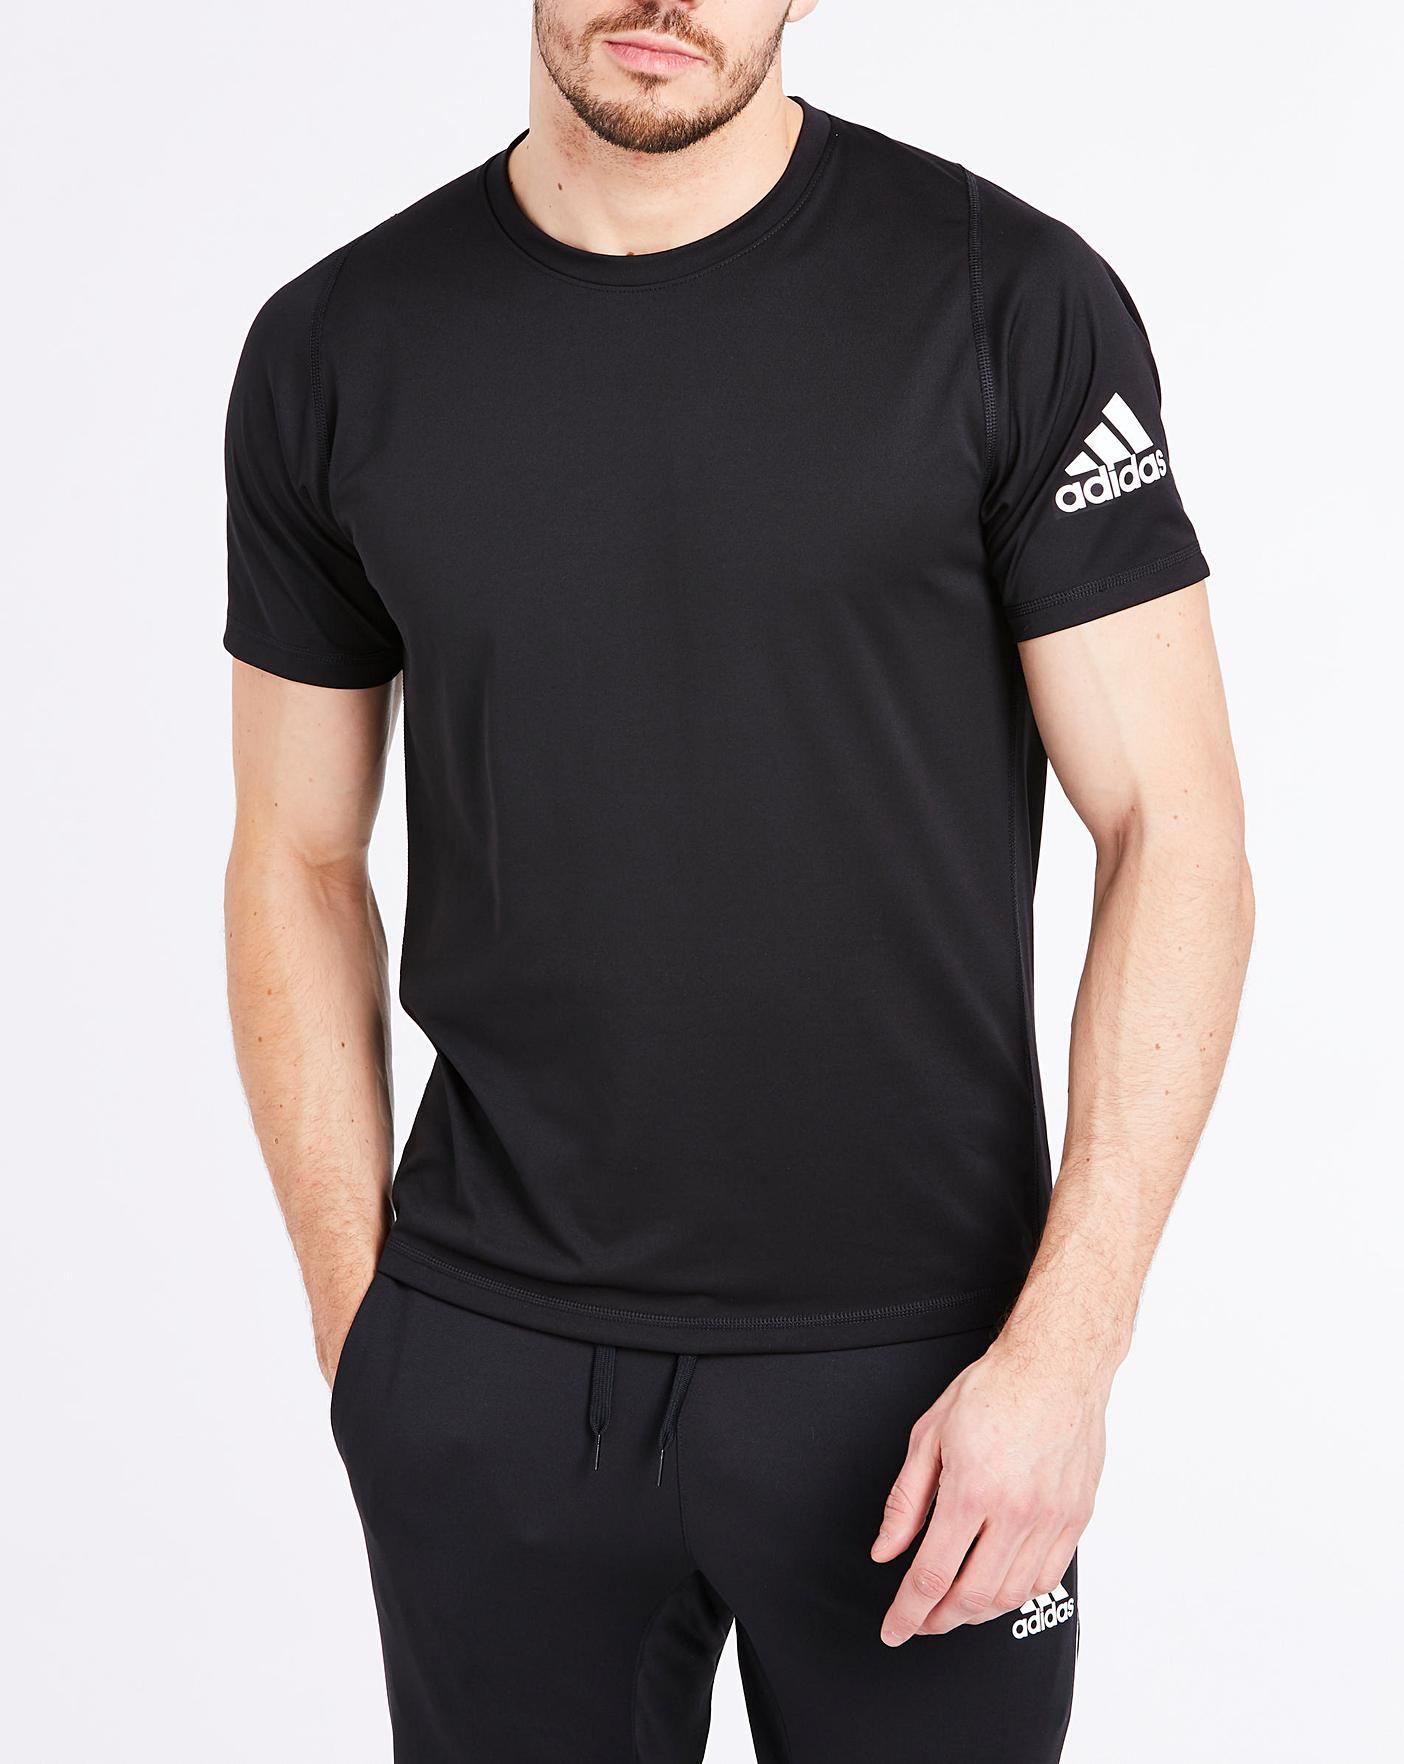 adidas training shirt